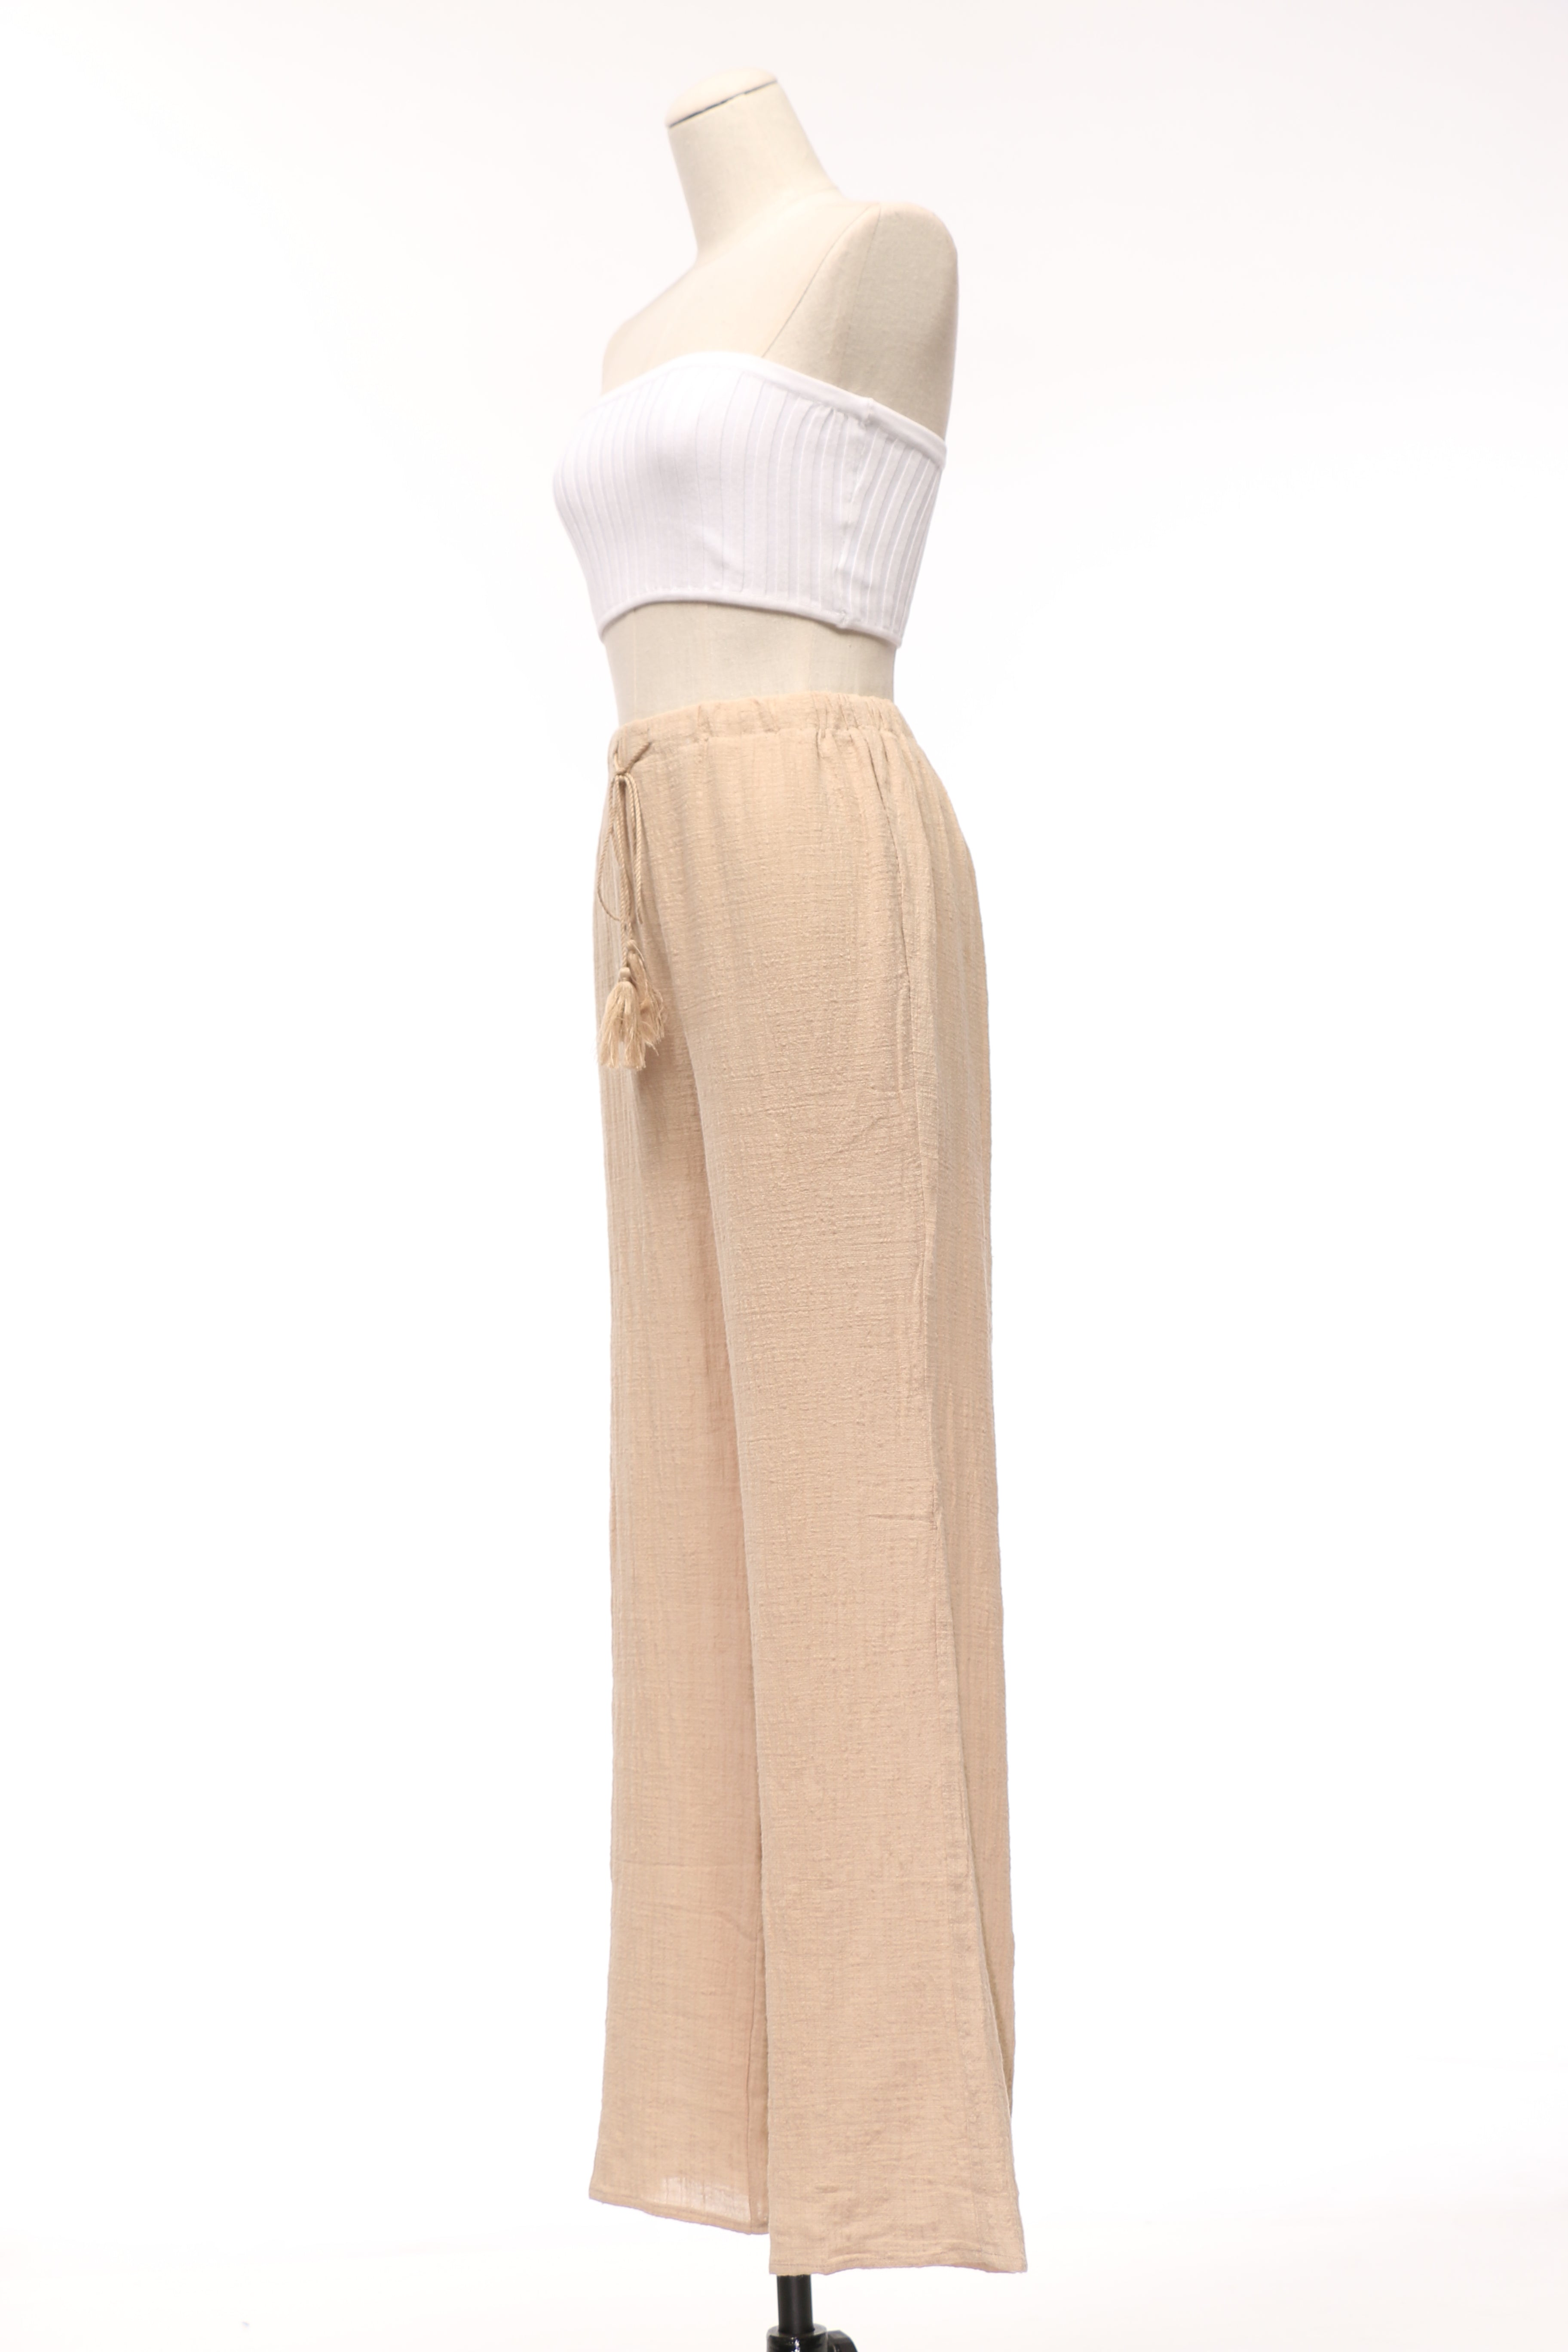 Easy Breezy High Waisted Palazzo Pants - OWLXFISH